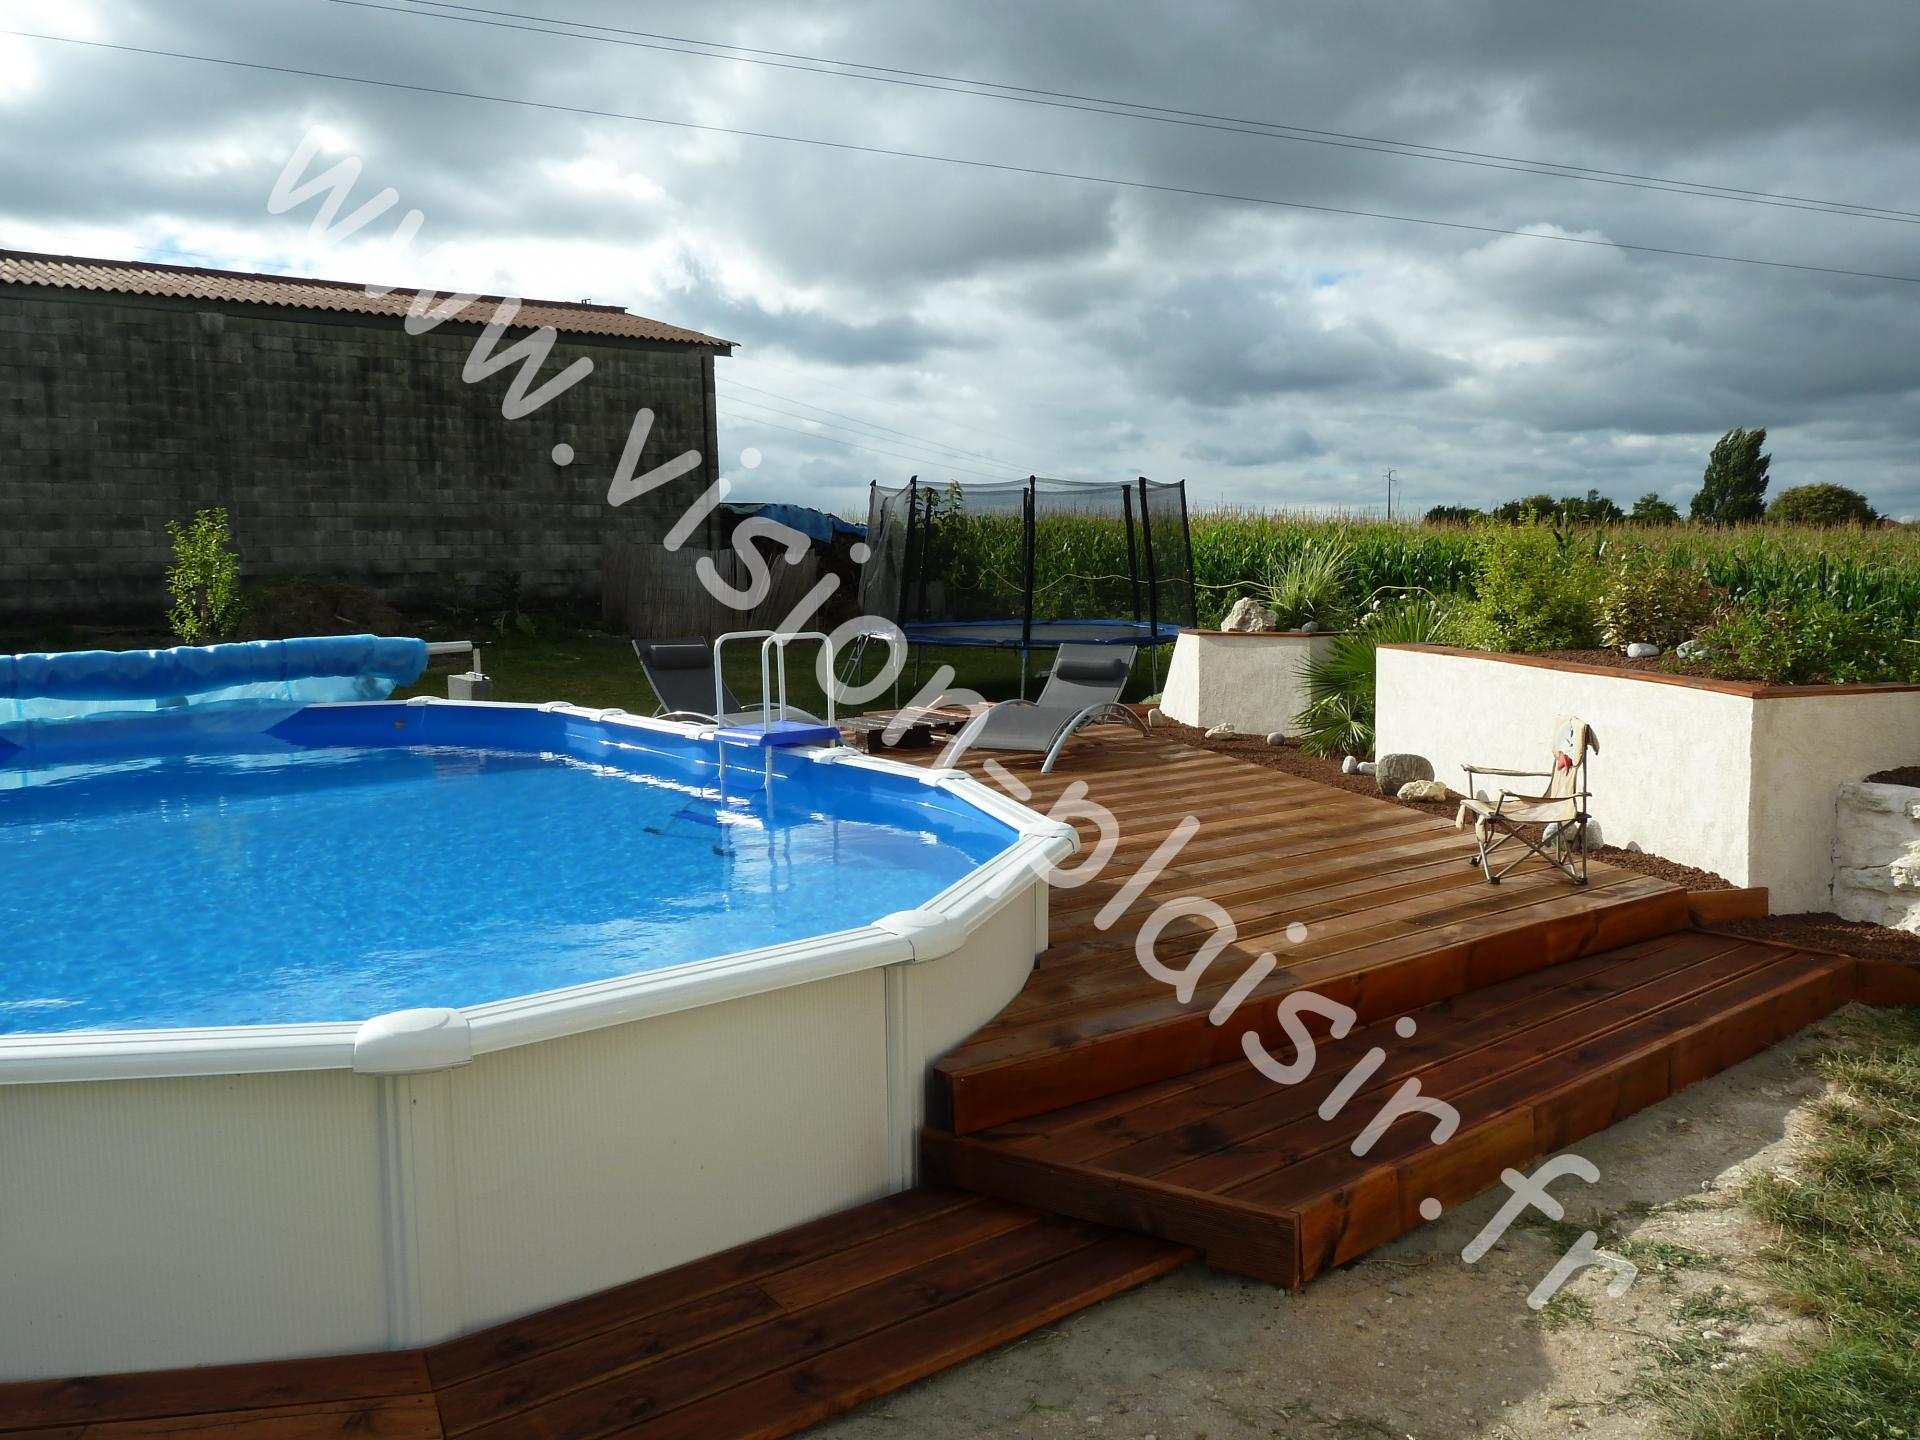 Blog de vision plaisir piscine hors sol semi enterr e for Piscine semi enterre